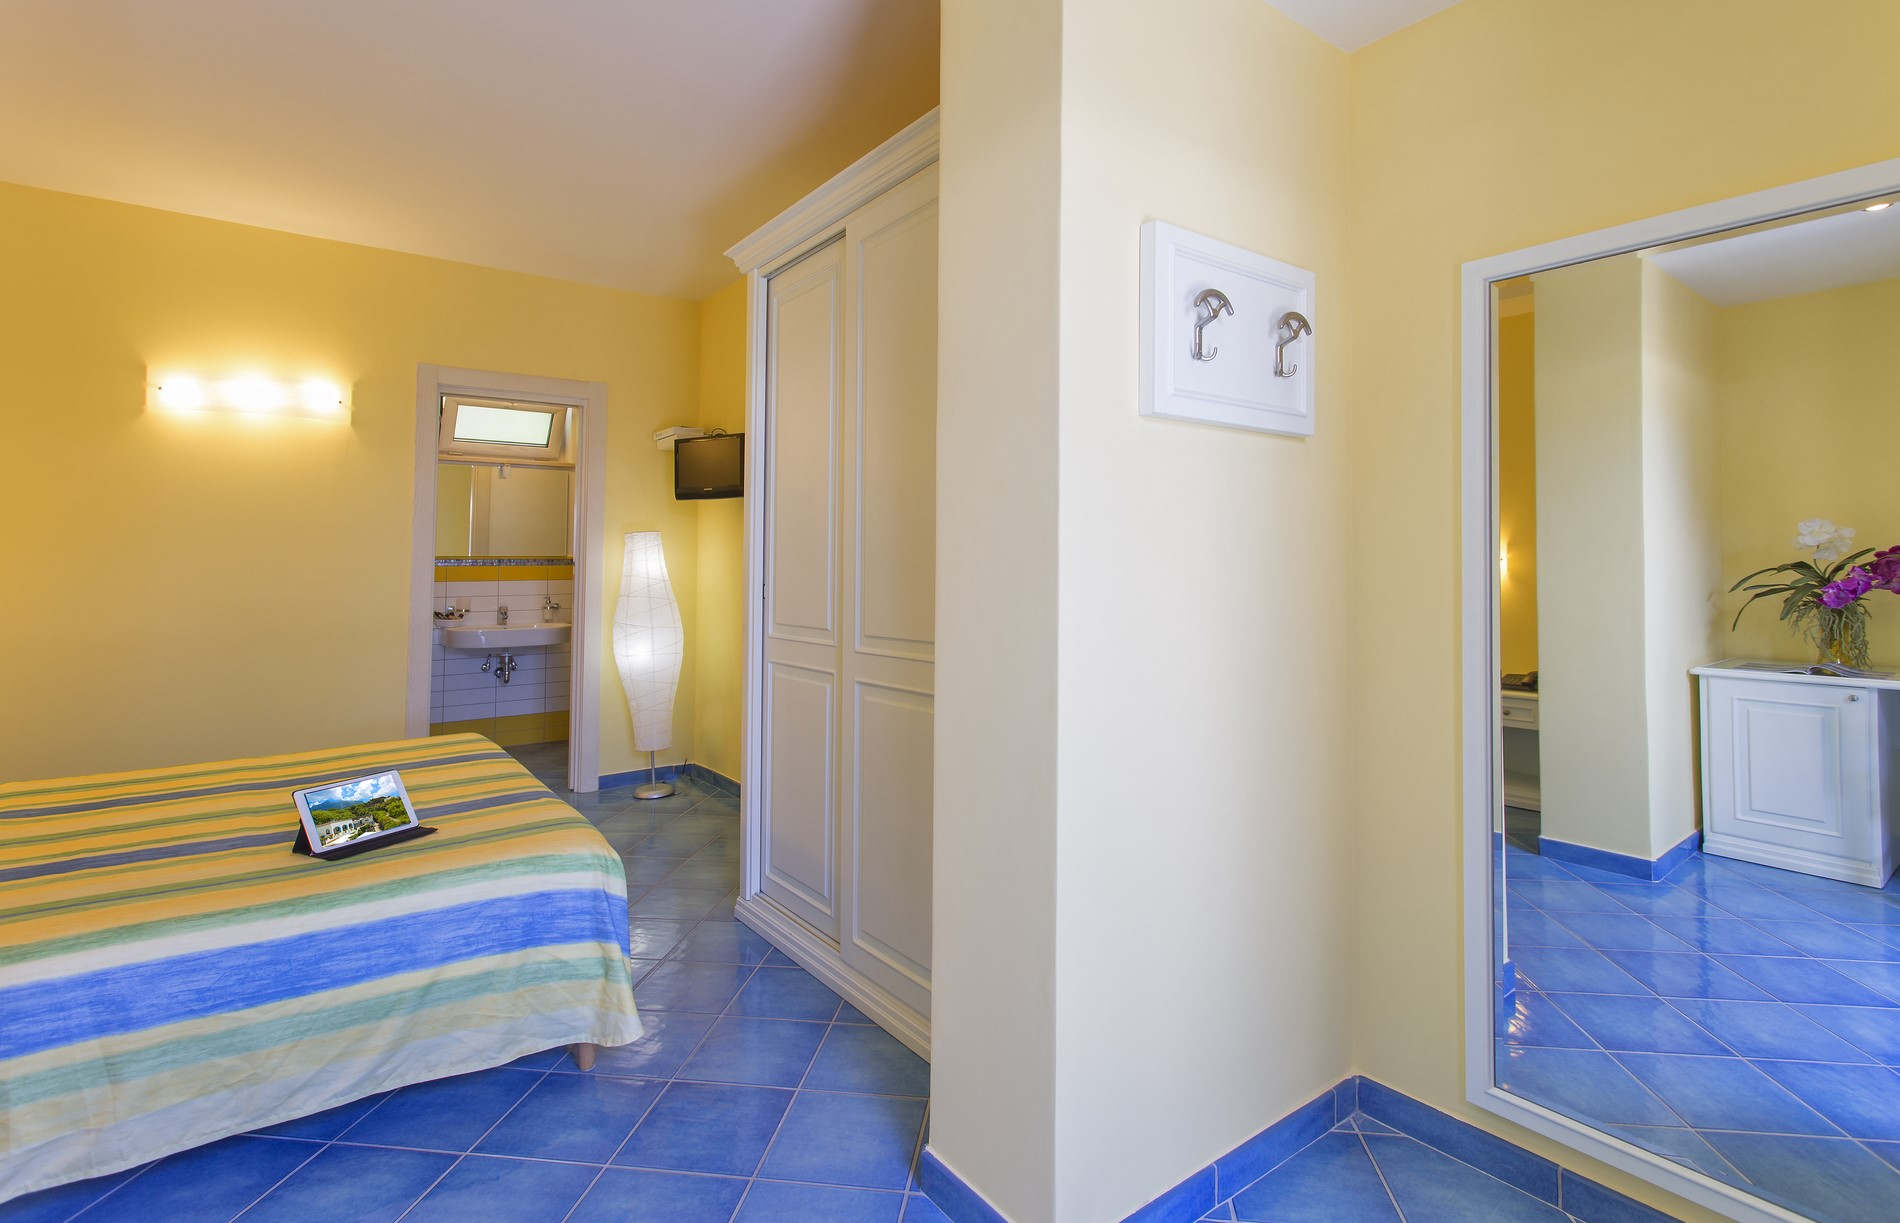 http://www.hotelcavadellisola.it/wp-content/uploads/2016/07/confort5-Copia-1.jpg